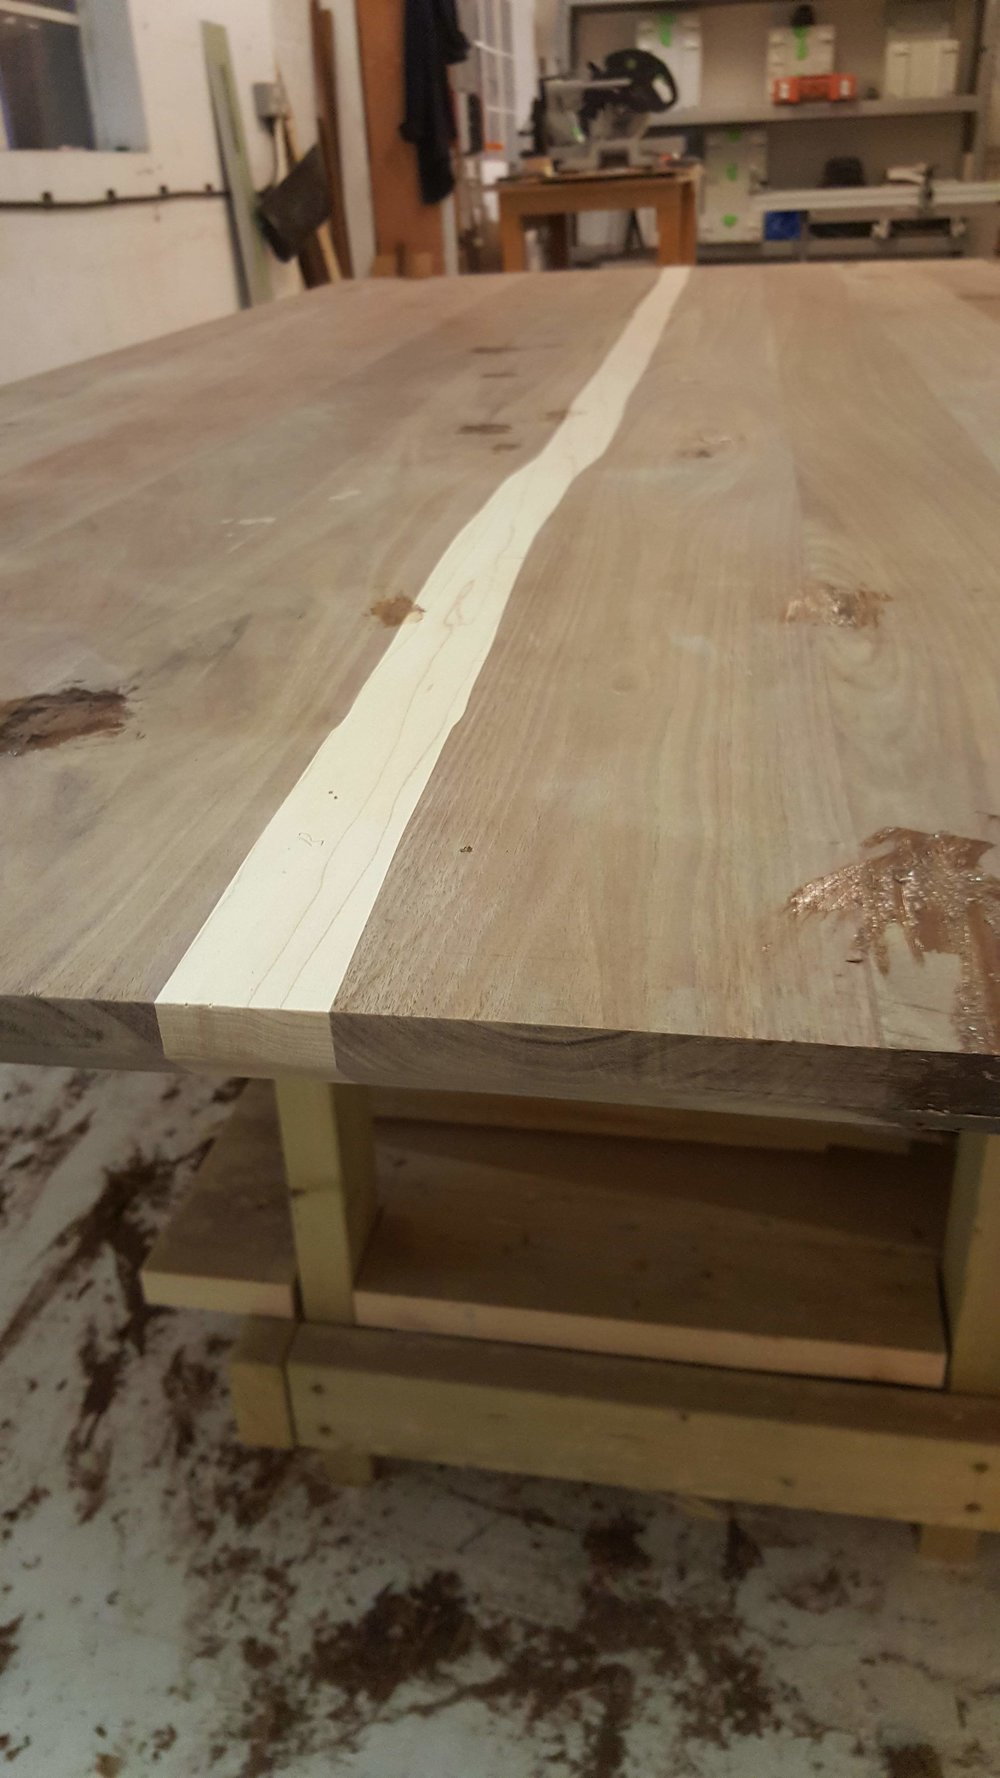 Heliconia_Furniturte_WalnutMaple_DiningTable_TableTop_Ready4SprayShop (1).jpg